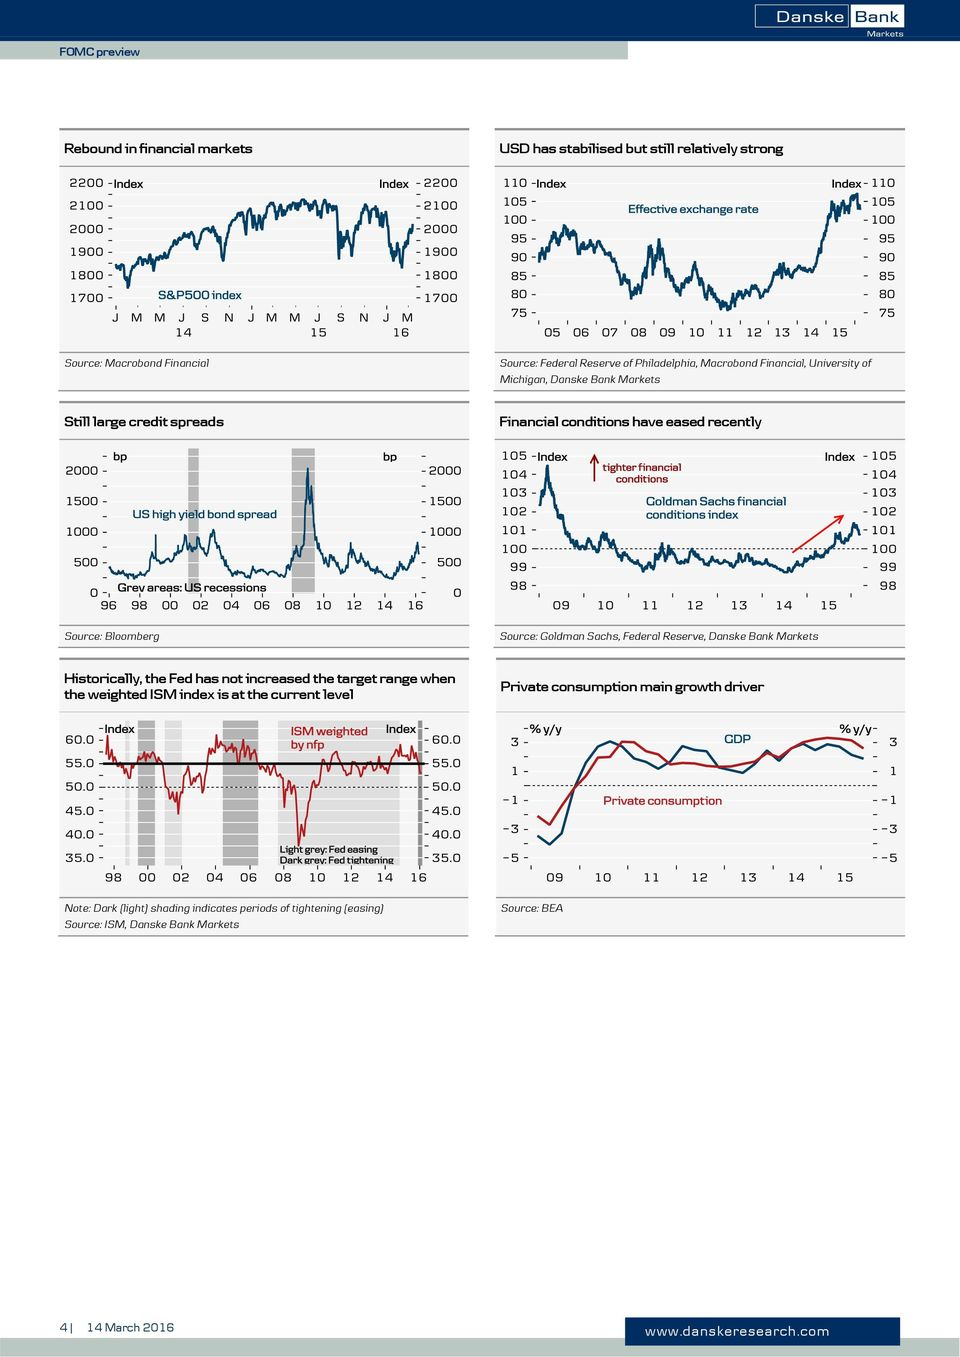 Sachs, Federal Reserve, Danske Bank Markets Historically, the Fed has not increased the target range when the weighted ISM index is at the current level Private